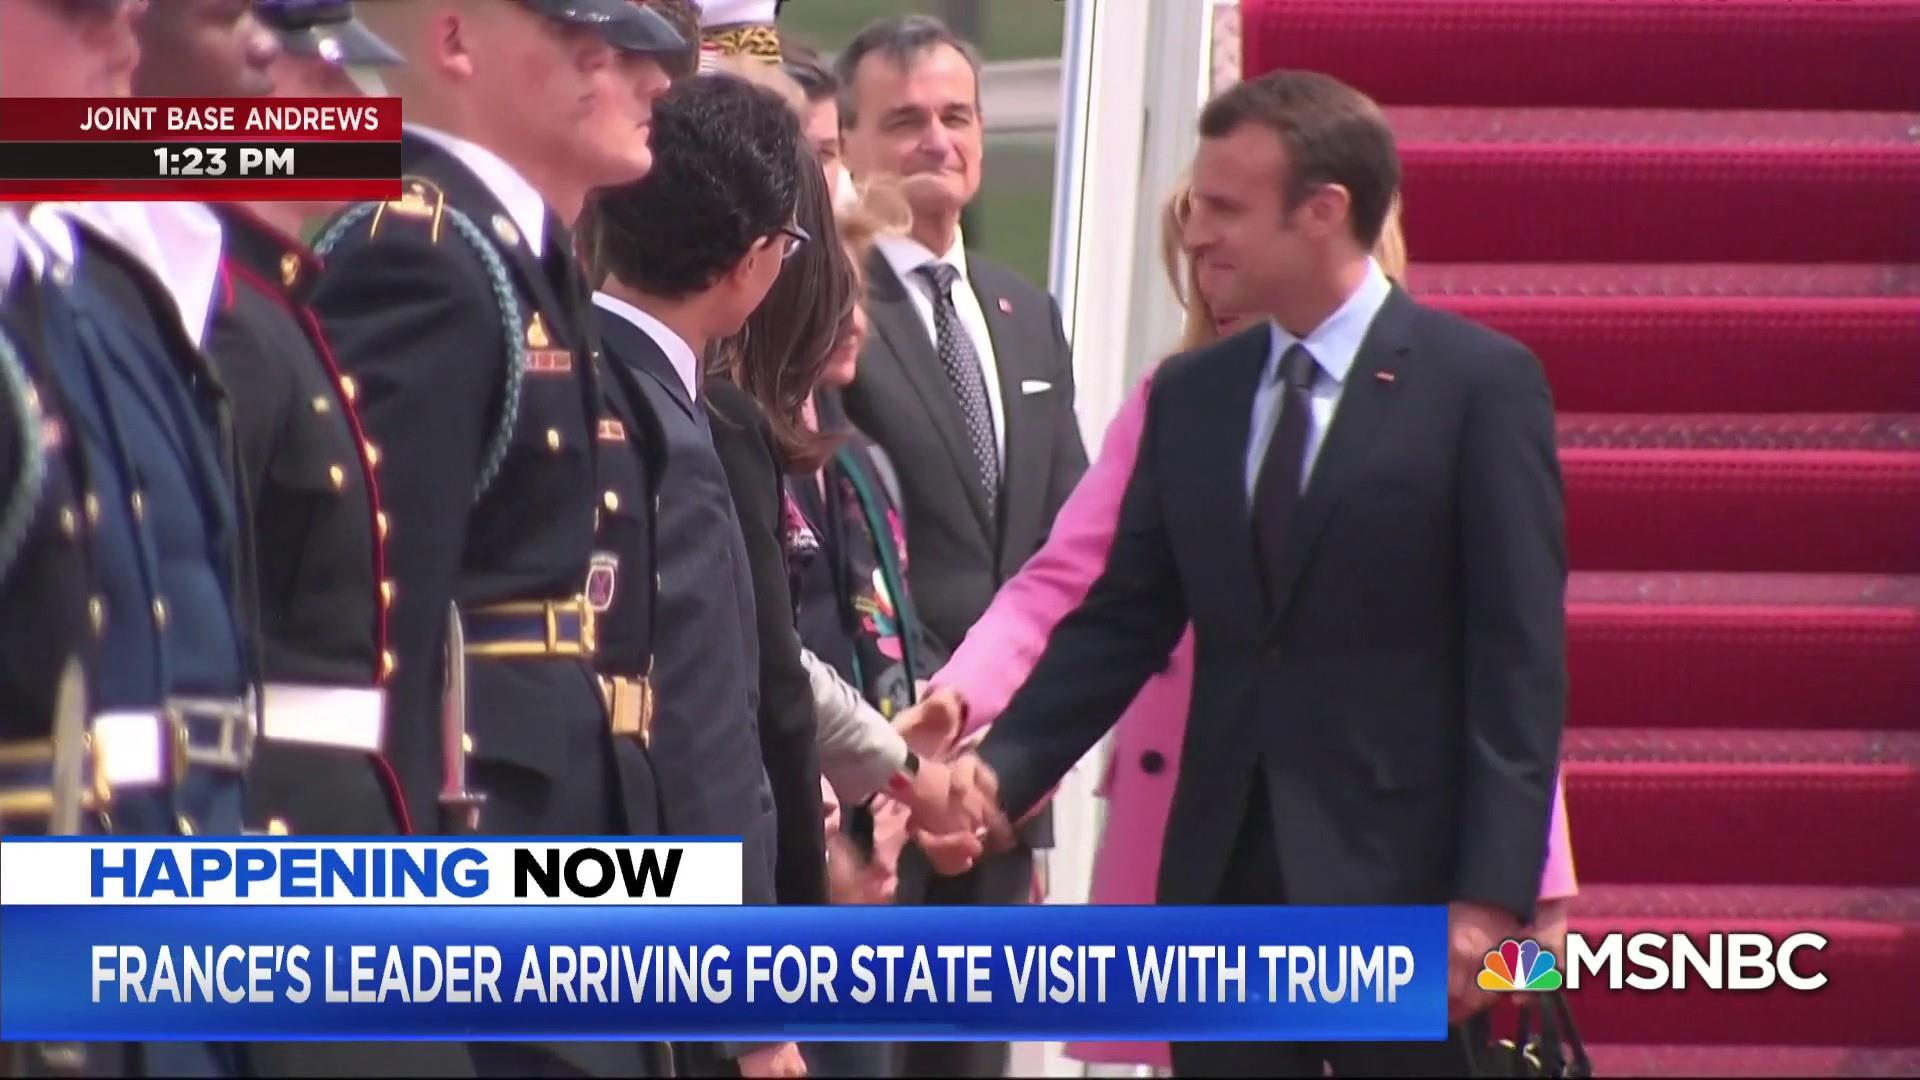 French President arrives to U.S. for state visit